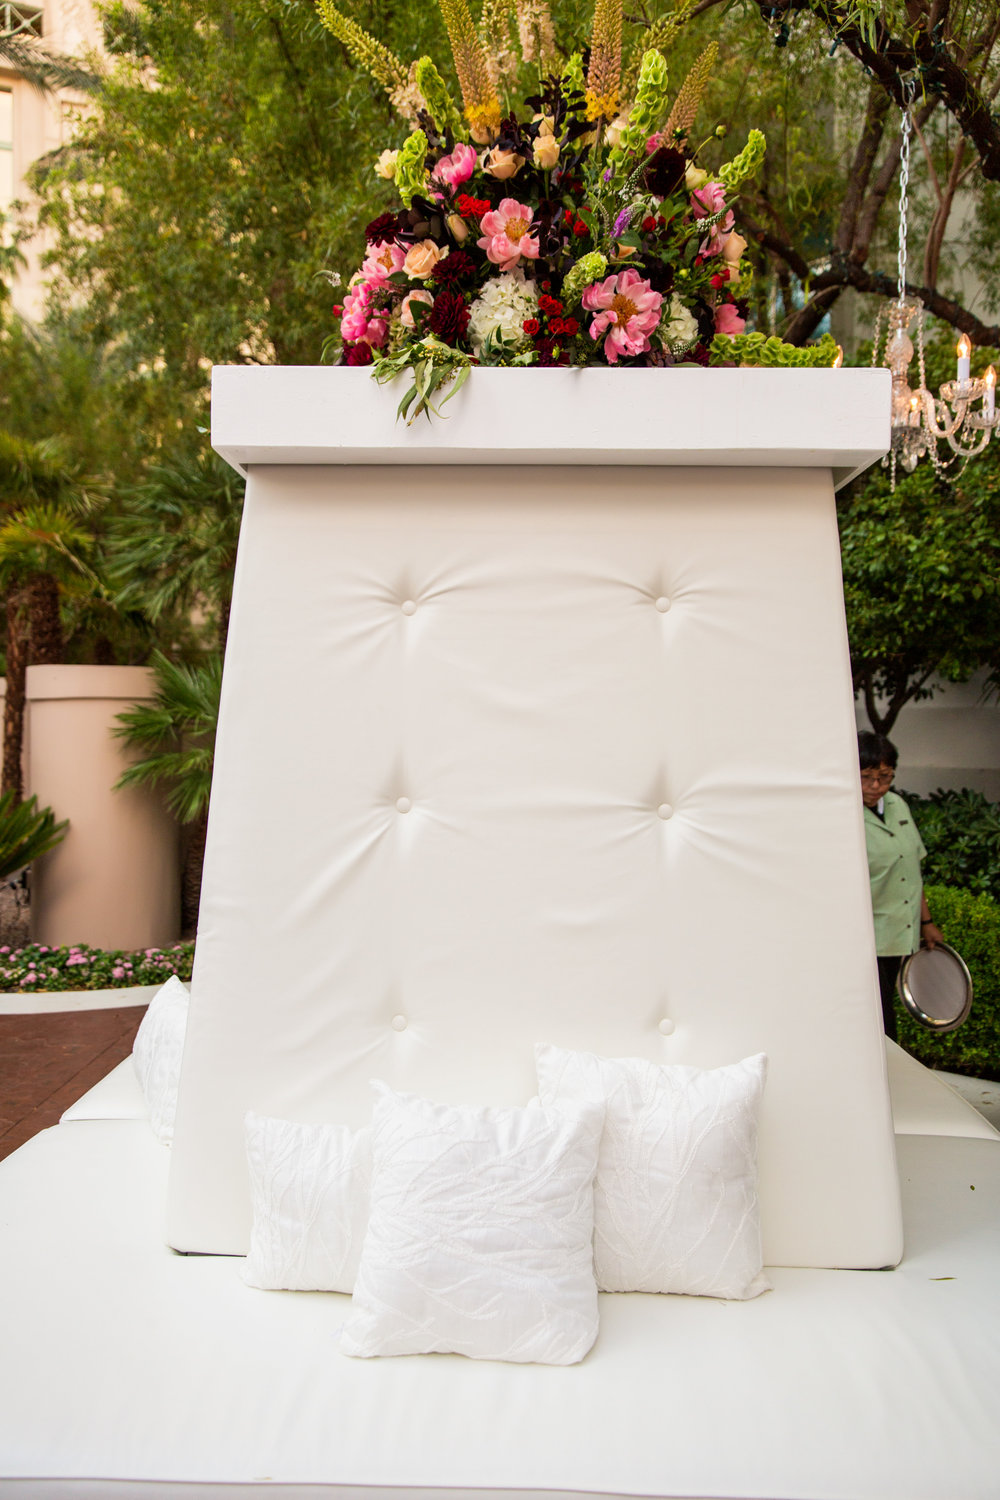 White tufted lounge furniture with red and fuchsia flowers. Wedding Planning by  Andrea Eppolito Events   ·  Photography by  Shandro Photo    ·  Wedding Venue  Four Seasons Las Vegas   ·  Floral and Decor by  Destination by Design   ·  Chandeliers and Lighting by  LED Unplugged